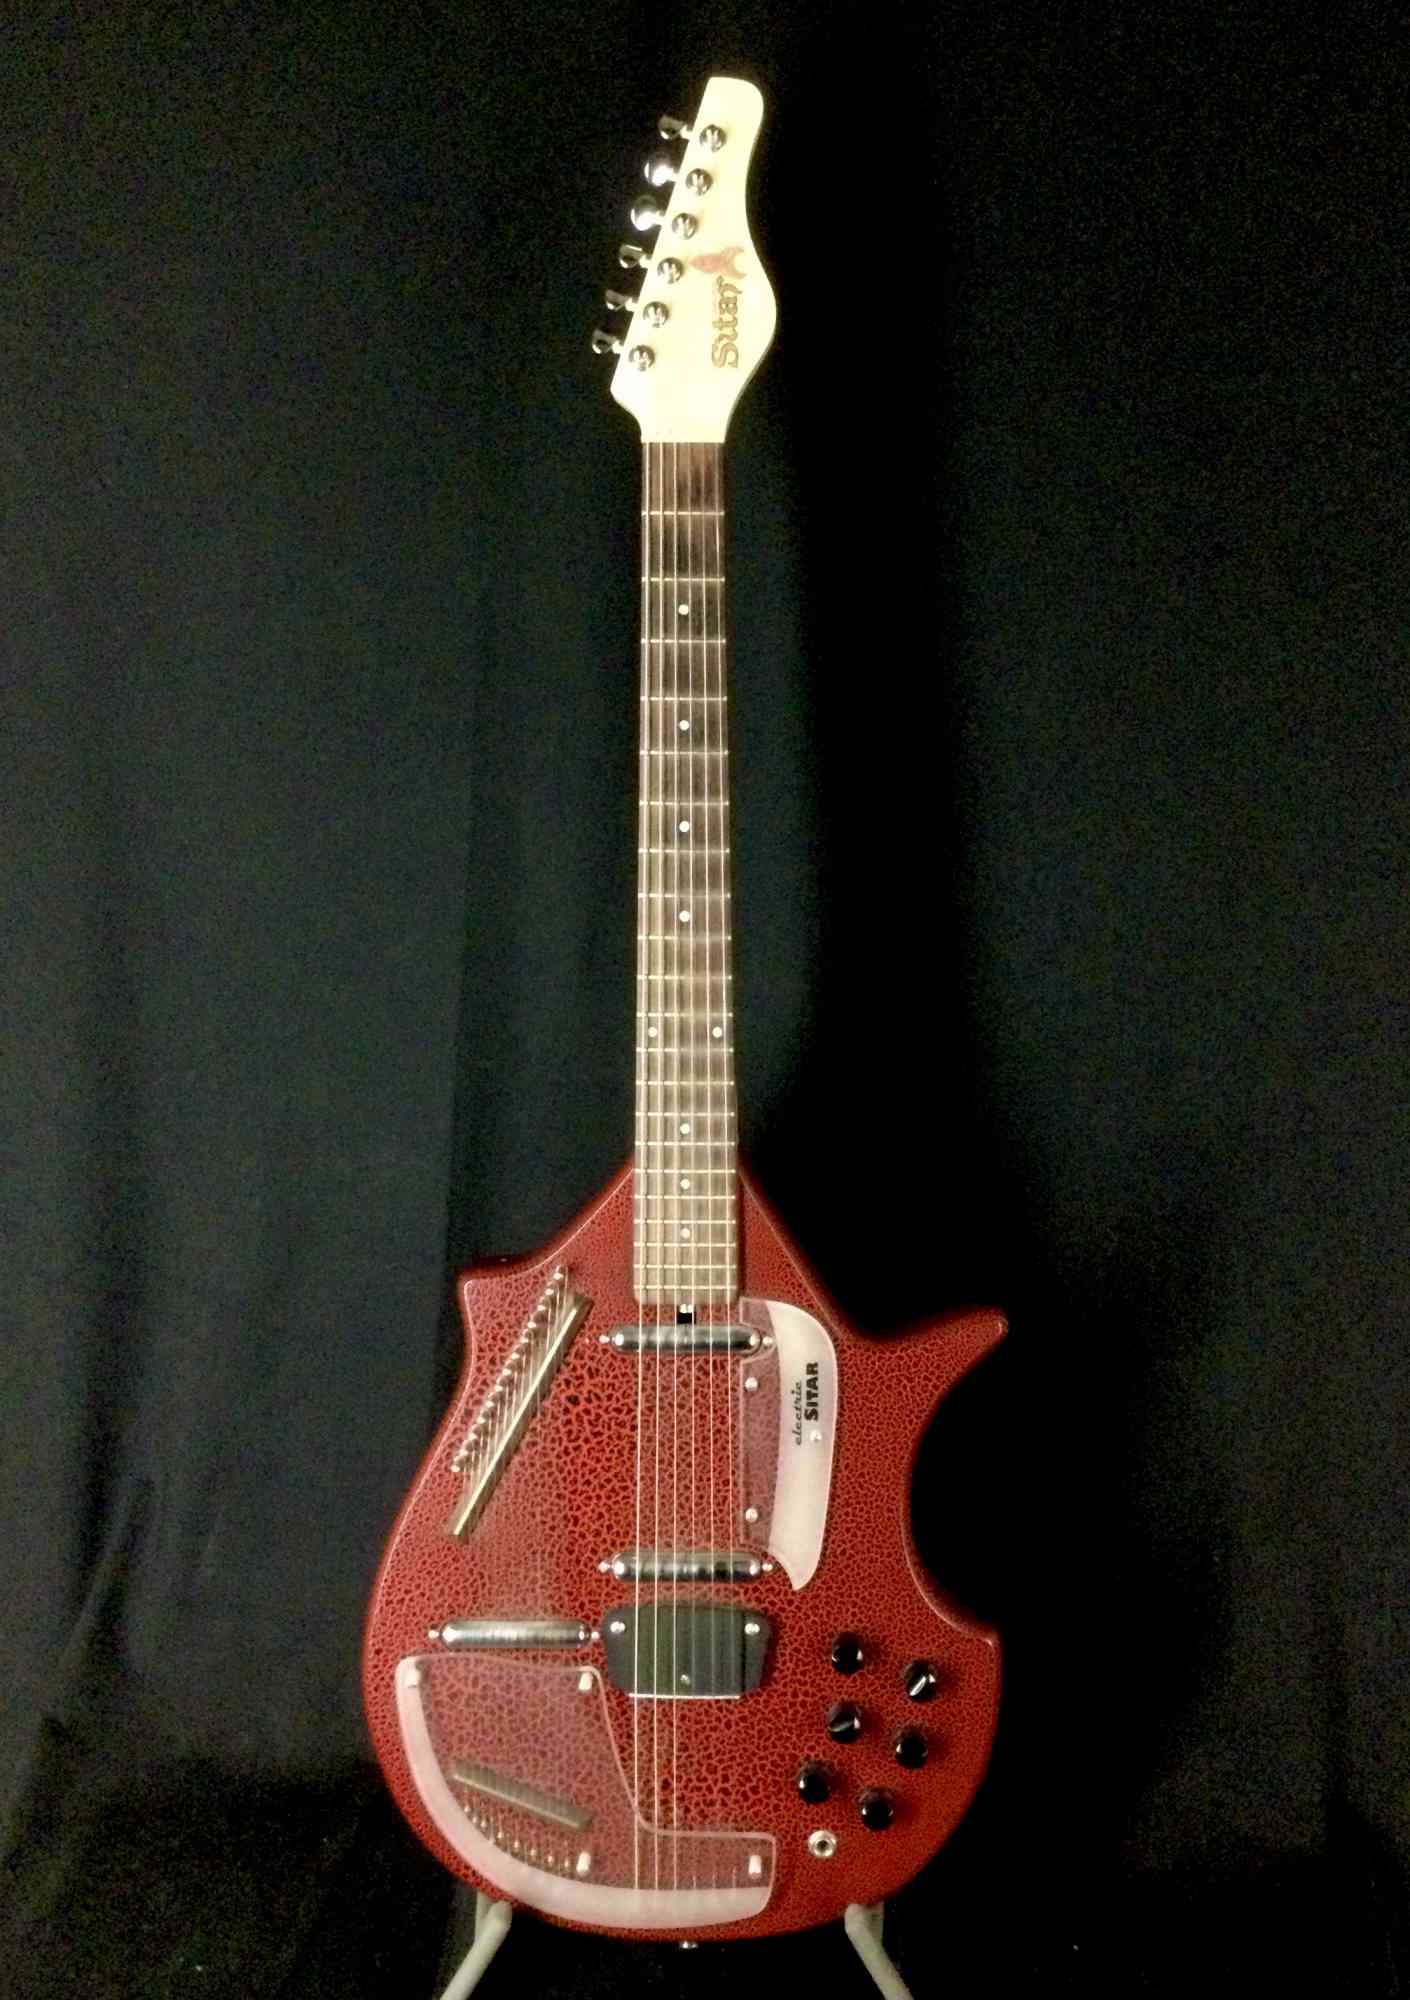 Jerry Jones Master Electric Sitar 2002 Red Gator. Click to enlarge